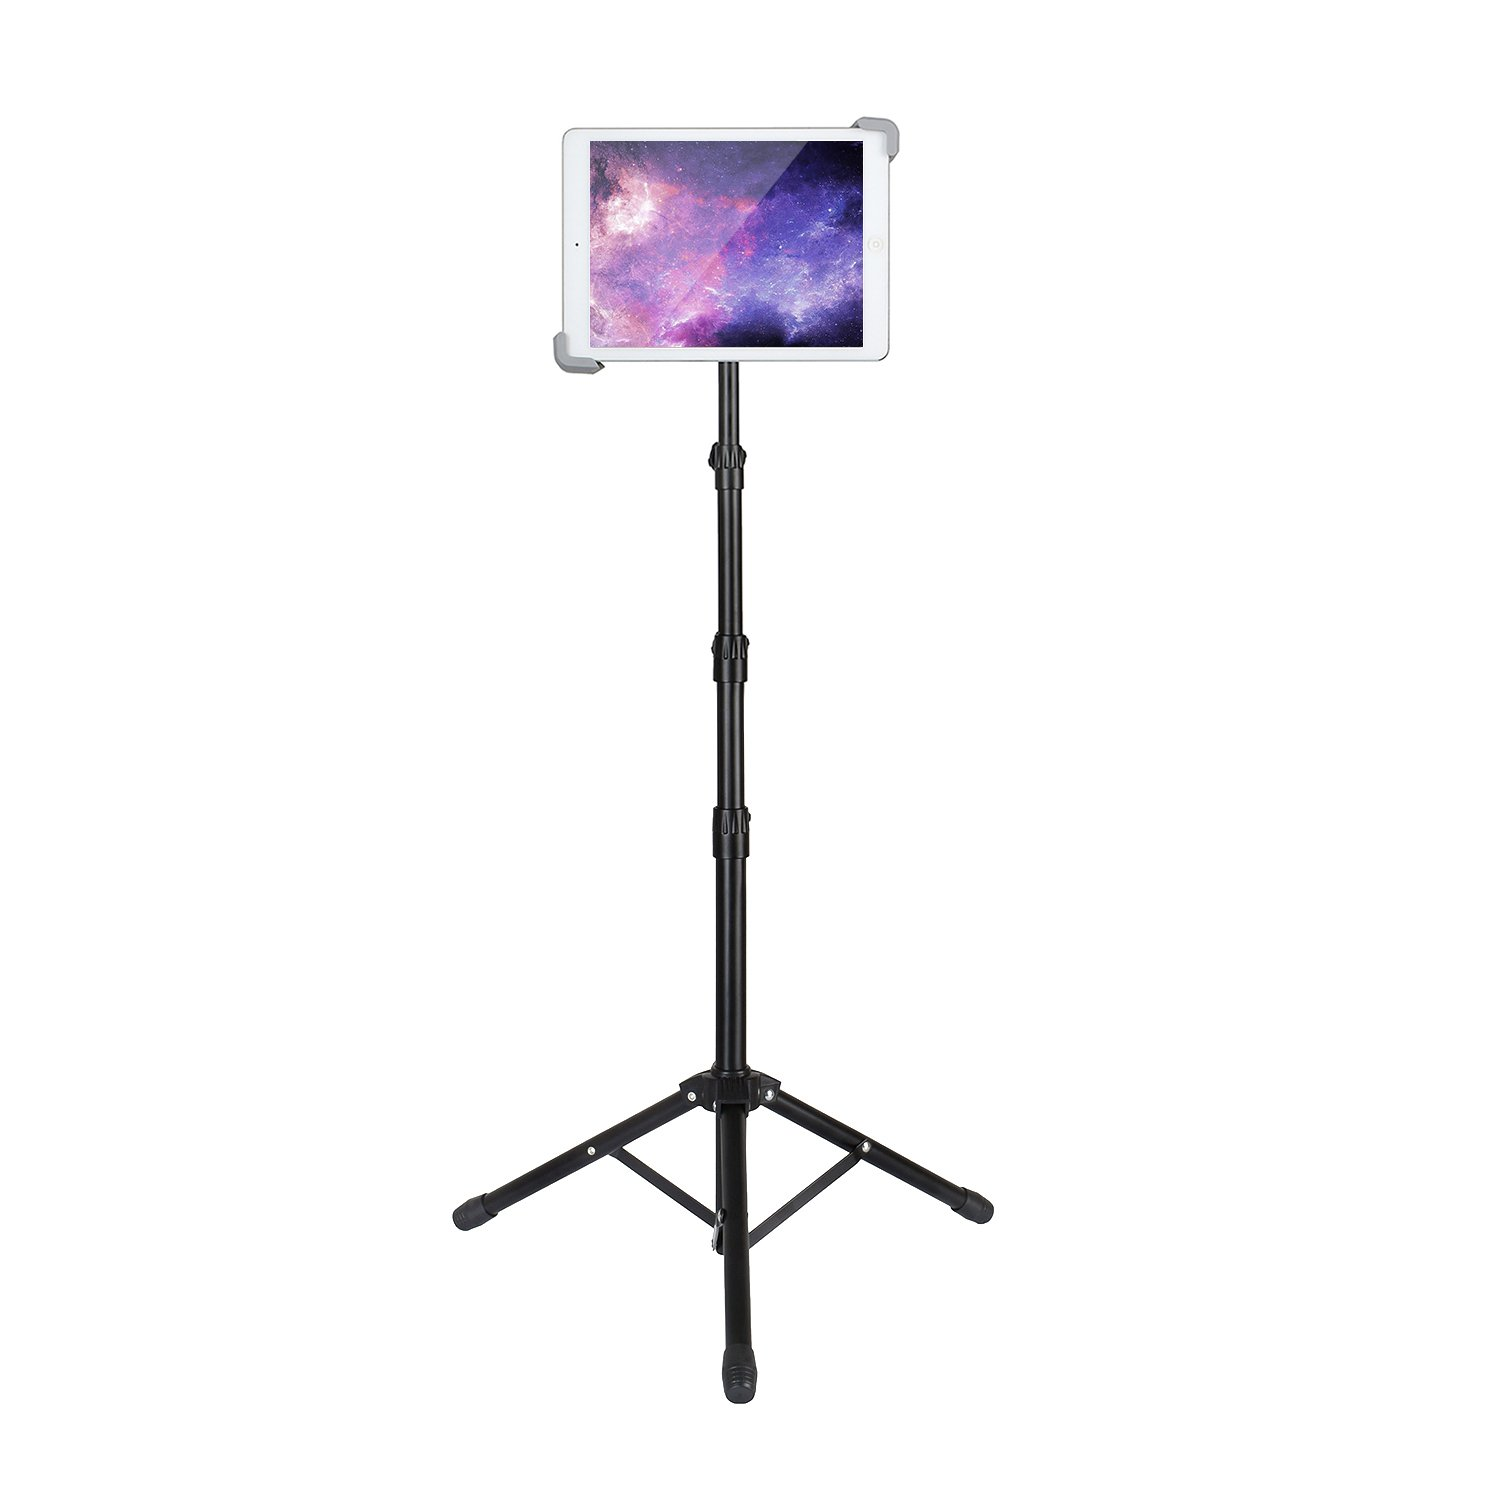 Elitehood Ipad Tripod Stand, Up to 65.3 Inch Height Adjustable Foldable Floor Tablet Stand With 360° Rotating Holder for iPad 1,2,3,4, iPad Mini, iPad Air, Samsung Galaxy and More 7.9'' to 12'' Tablets